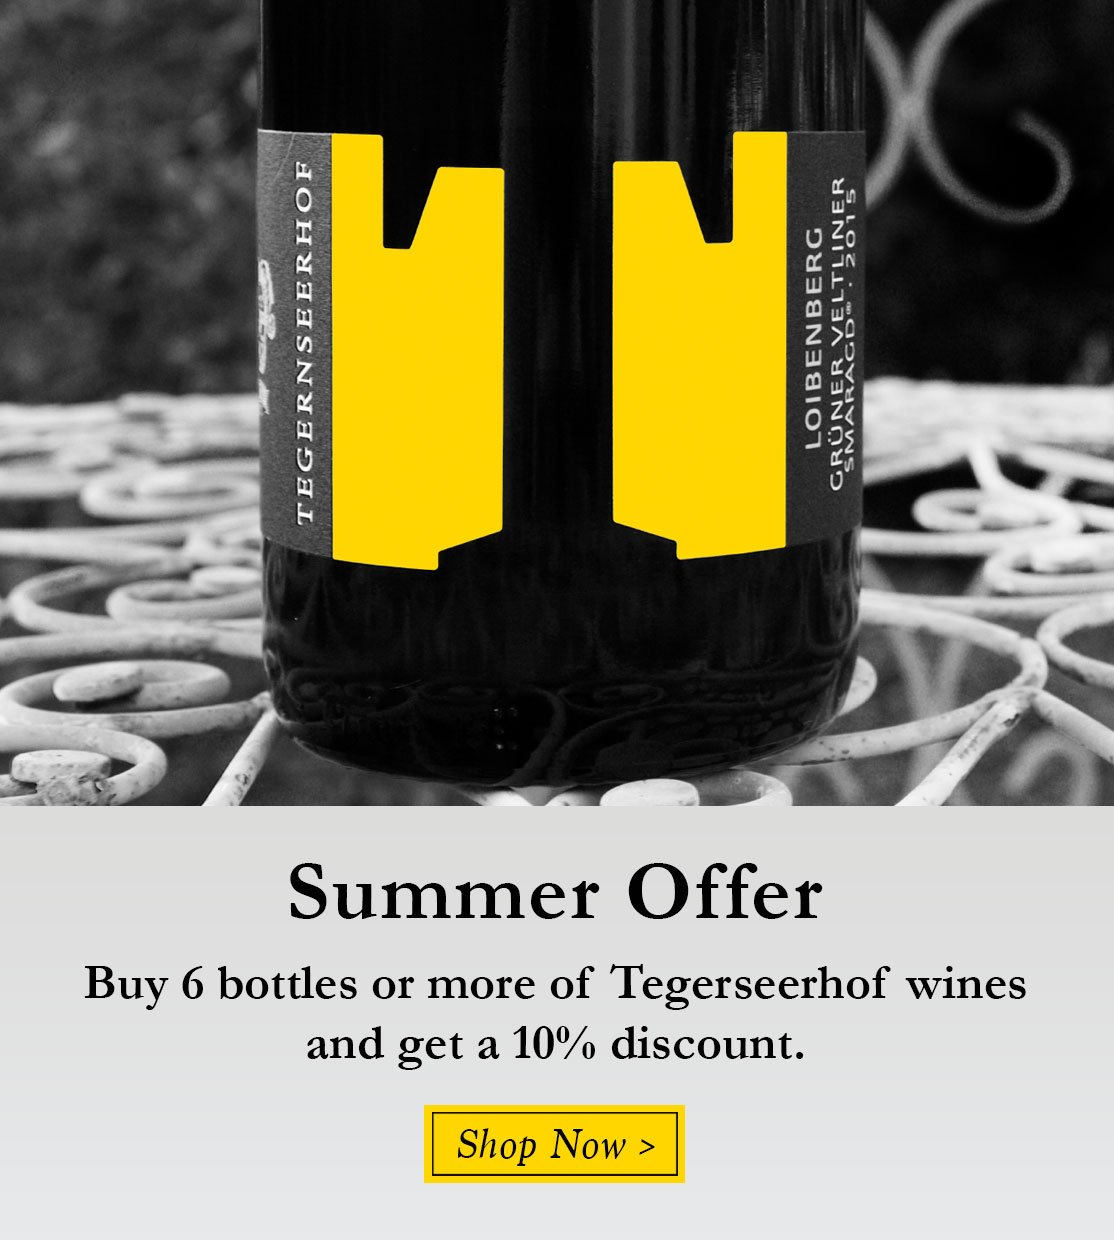 Tegernseerhof Summer Offer